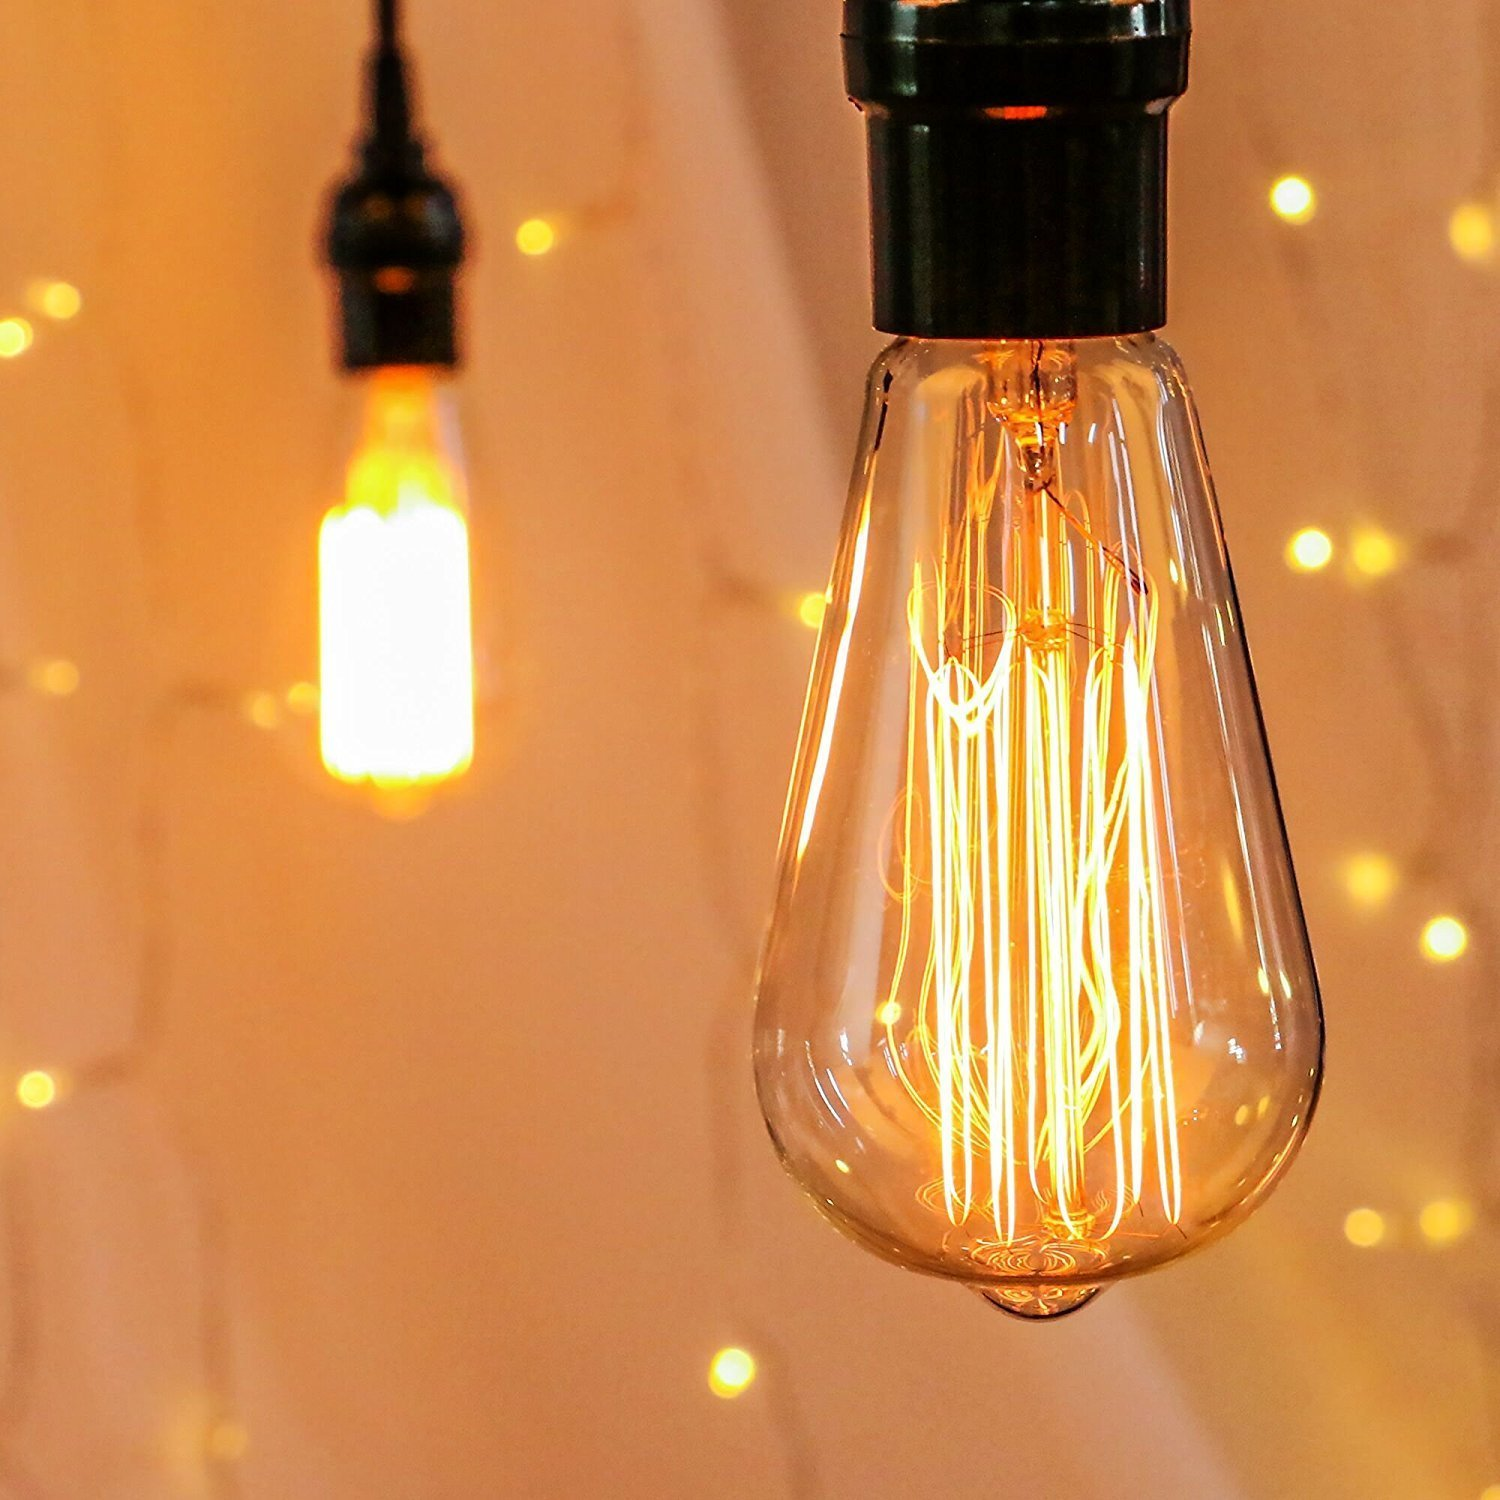 Antique Vintage 6-Pack Edison Light Bulbs - Dimmable 60watts Warm Replacement Bulbs, ST64 Squirrel Cage Filament Design E26 Base for Wall Sconces & Pendant Lights